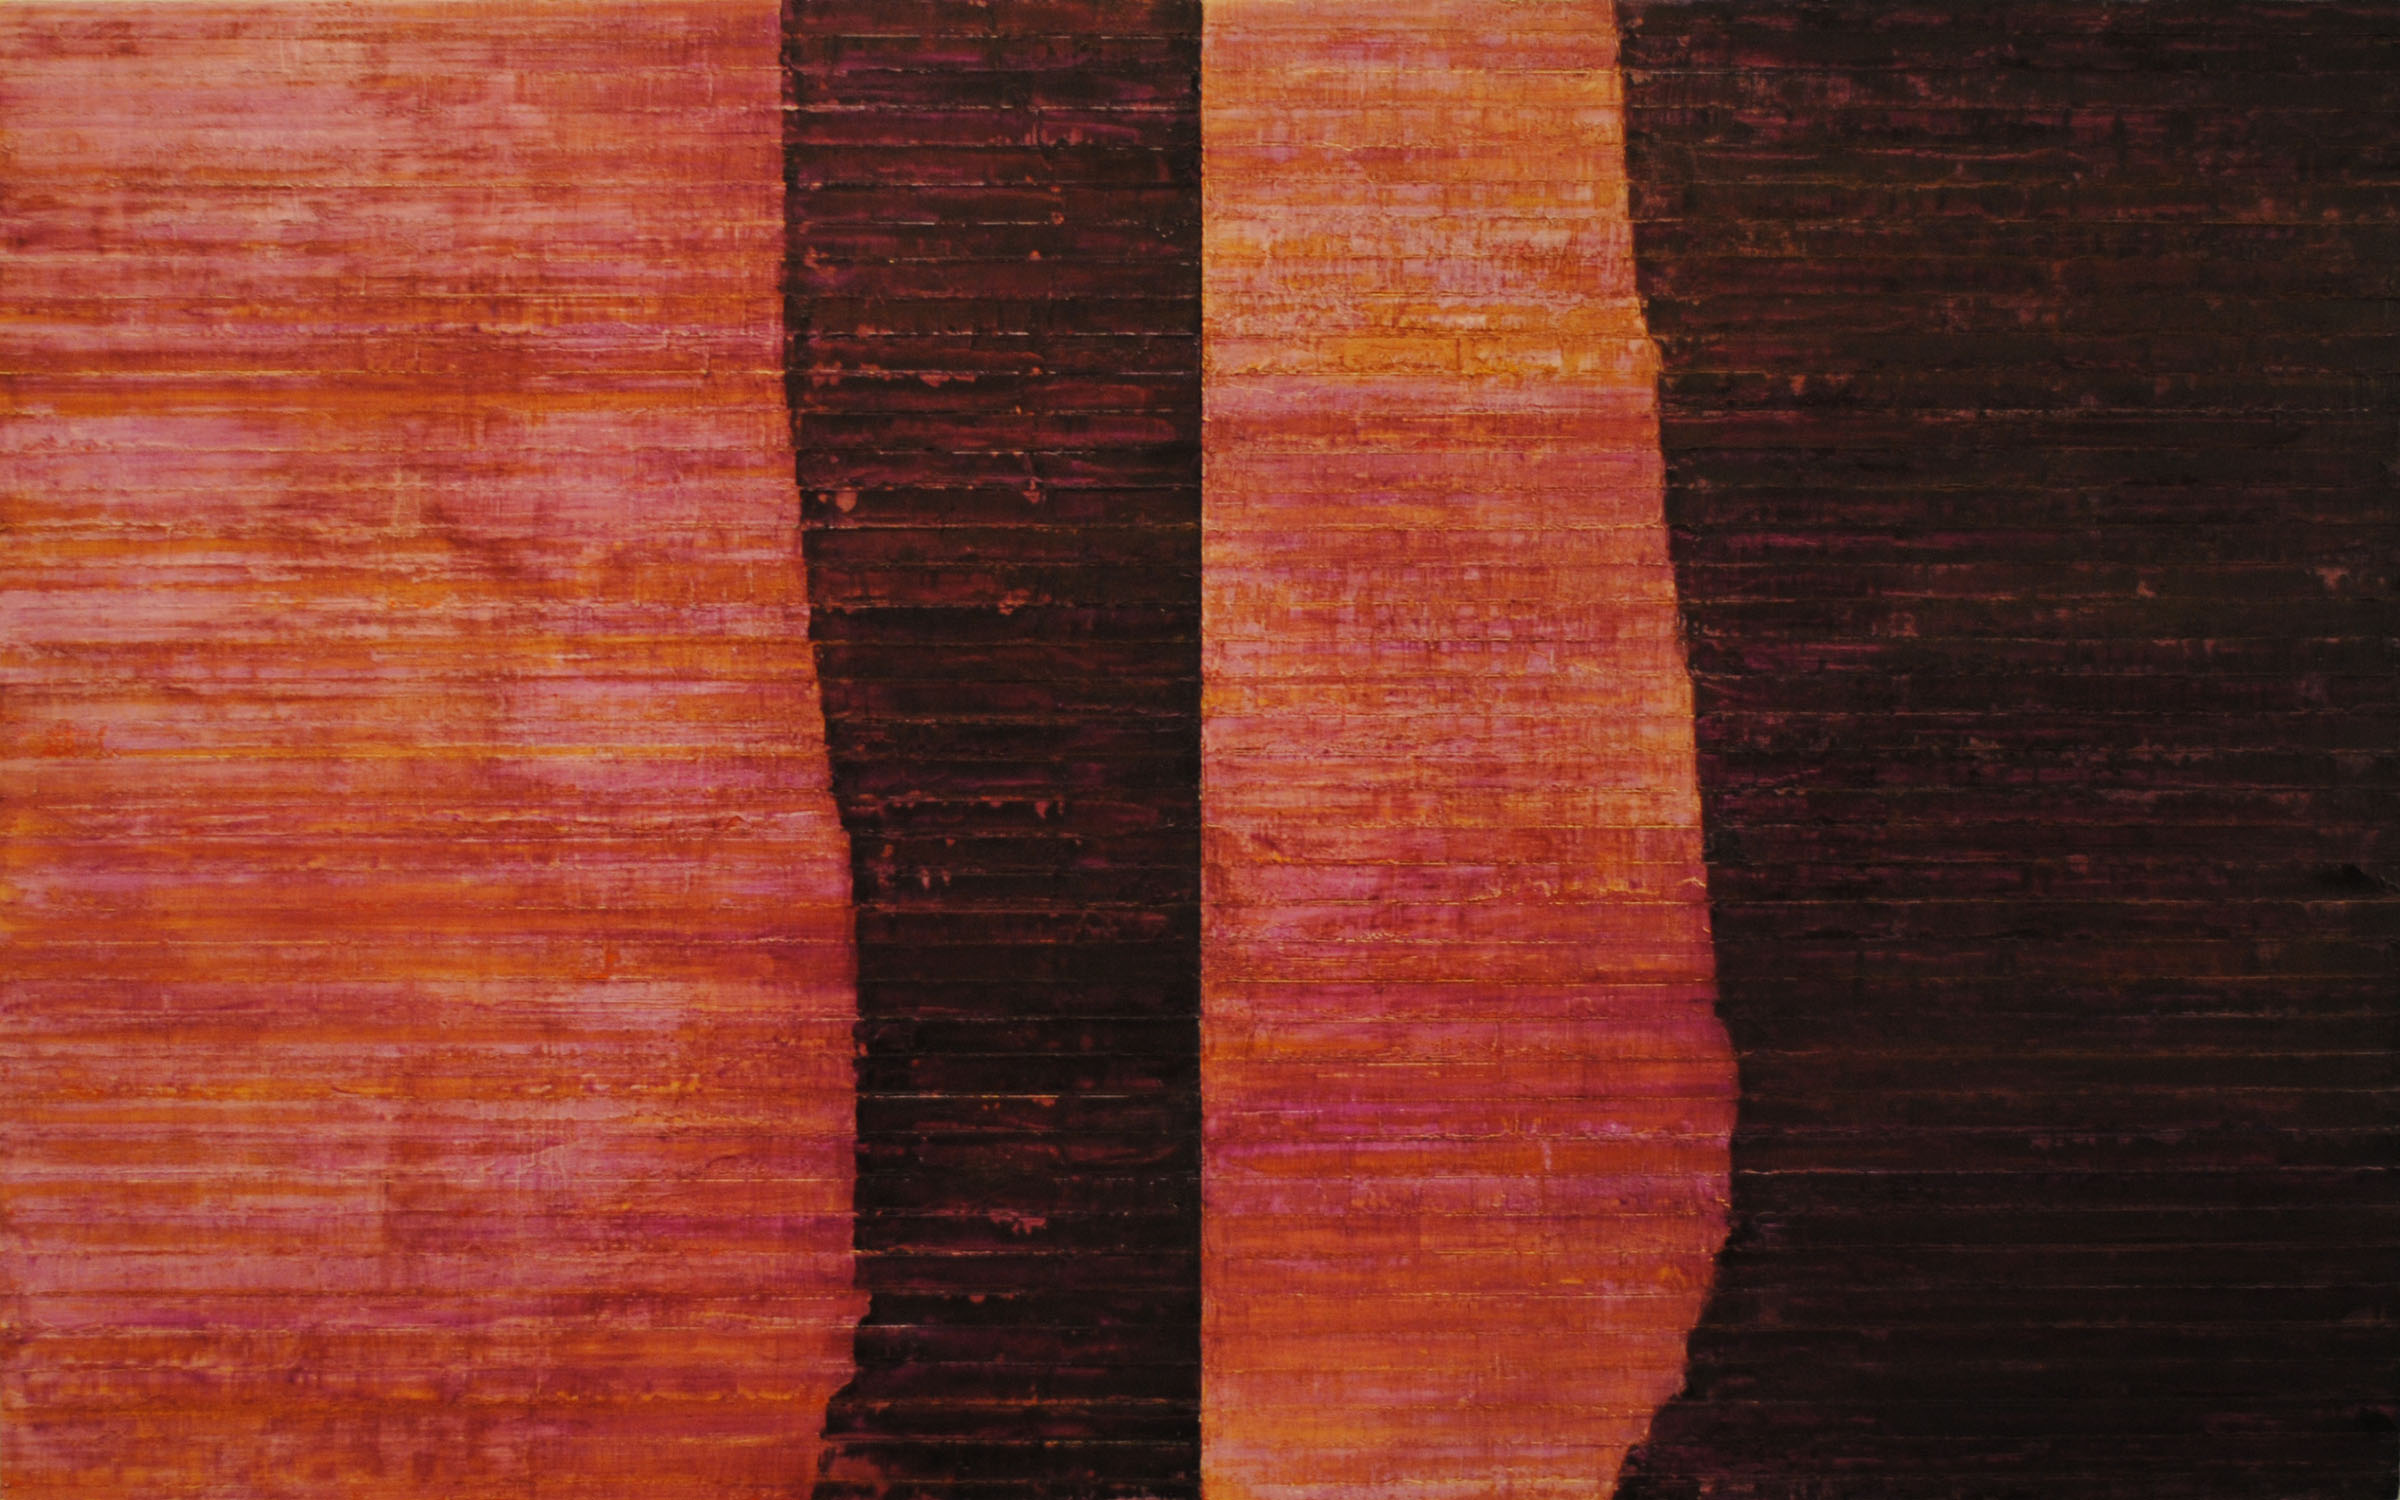 Linea Terminale: 6.10, 2010, Oil on linen over panels, 20 x 36 inches.